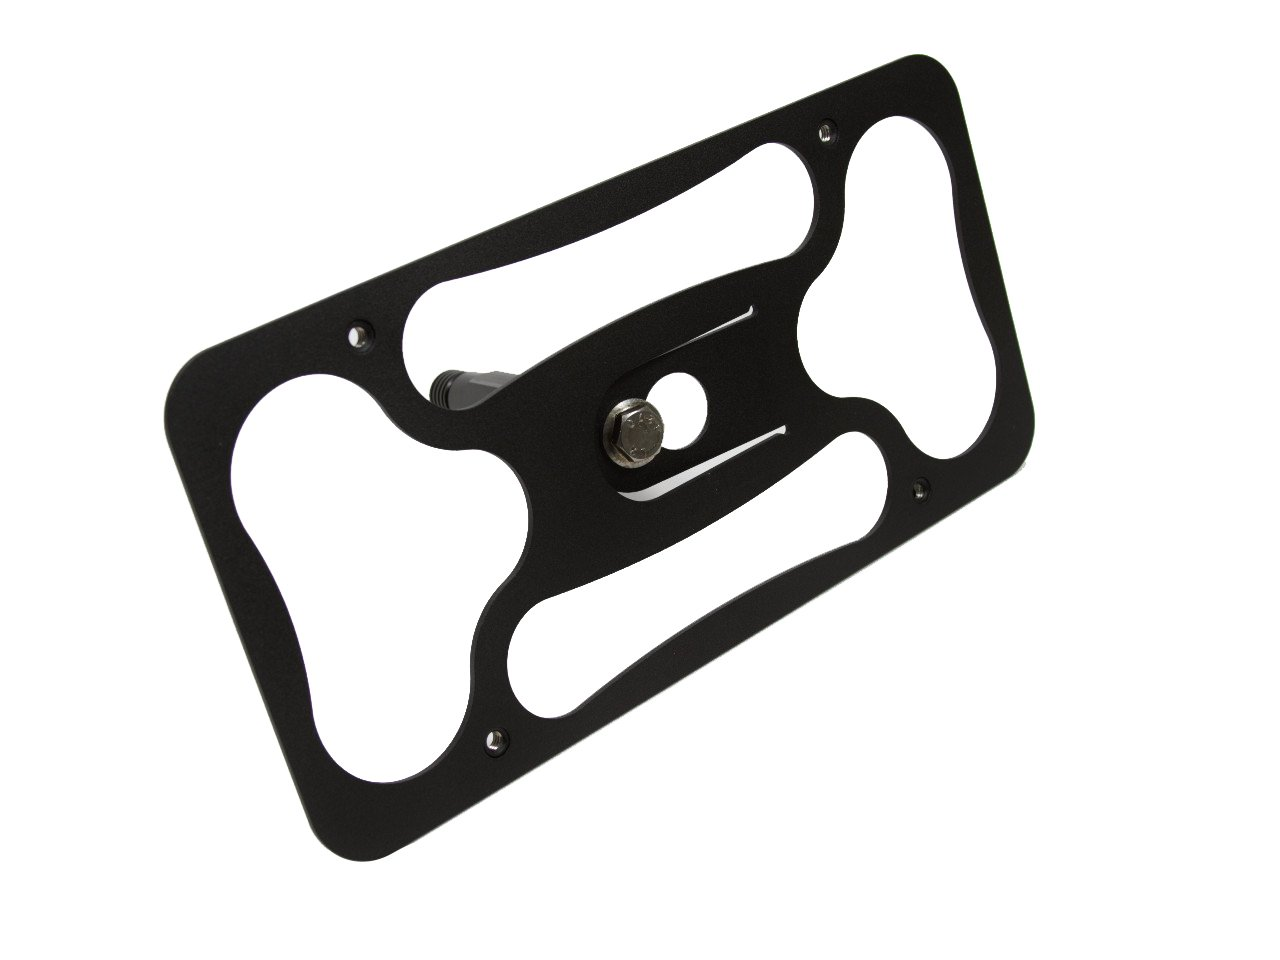 Image of CravenSpeed Platypus License Plate Mount for Alfa Romeo Stelvio 2018-2020 | No Drilling | Installs in Seconds | Made in The USA Fasteners